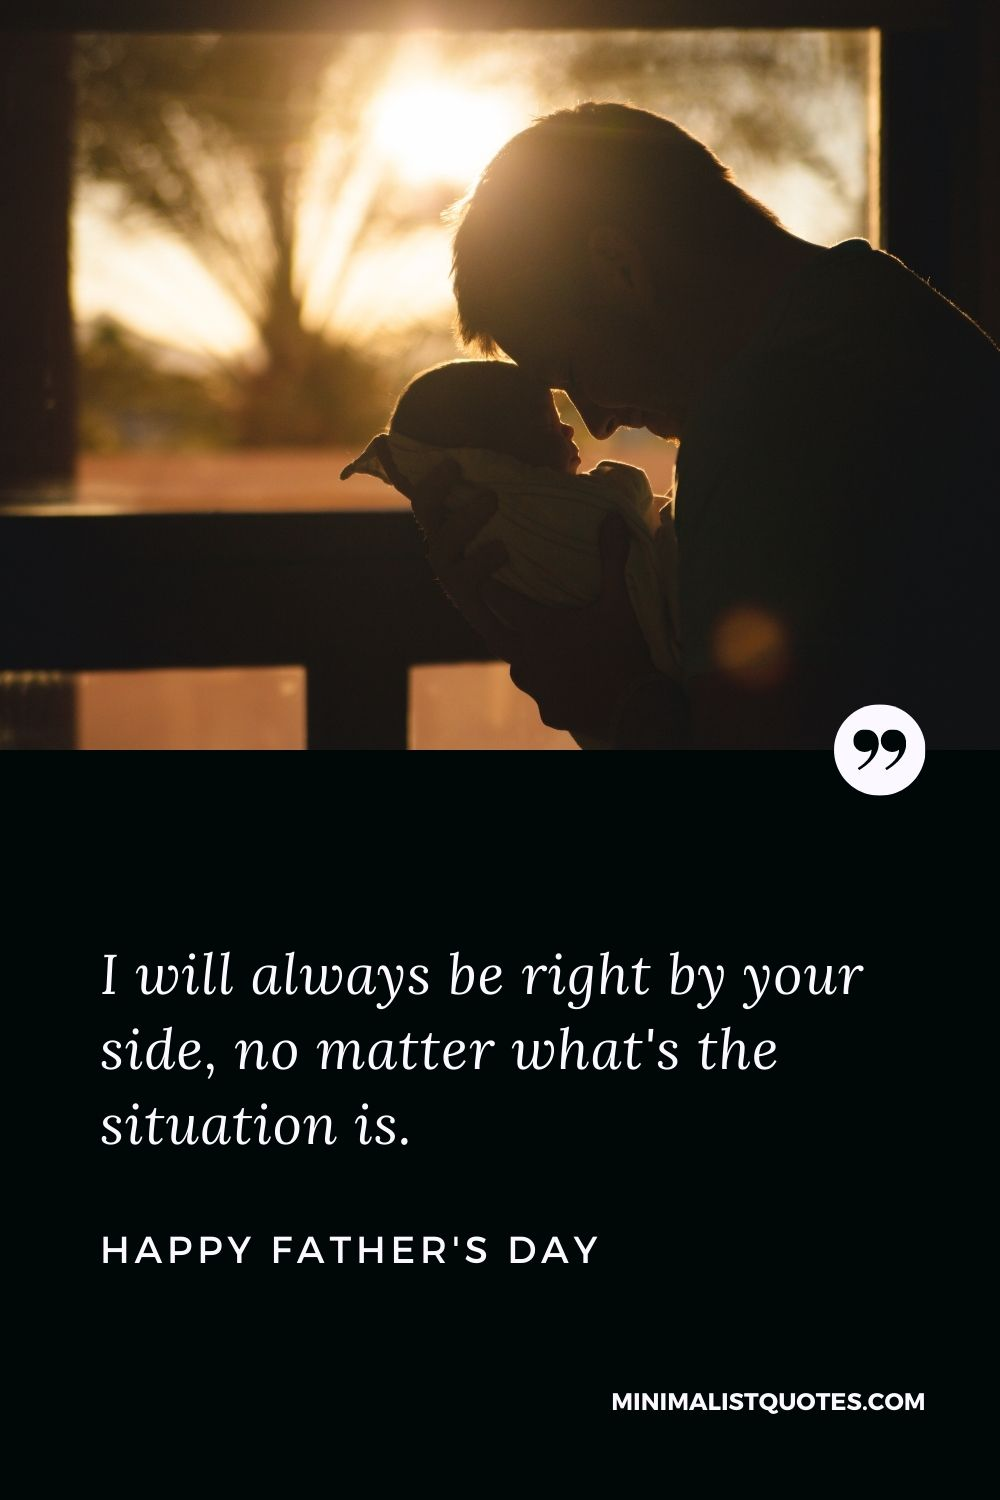 Father's Day wish, message & quote with HD image: I will always be right by your side, no matter what's the situationis. Happy Father's Day!